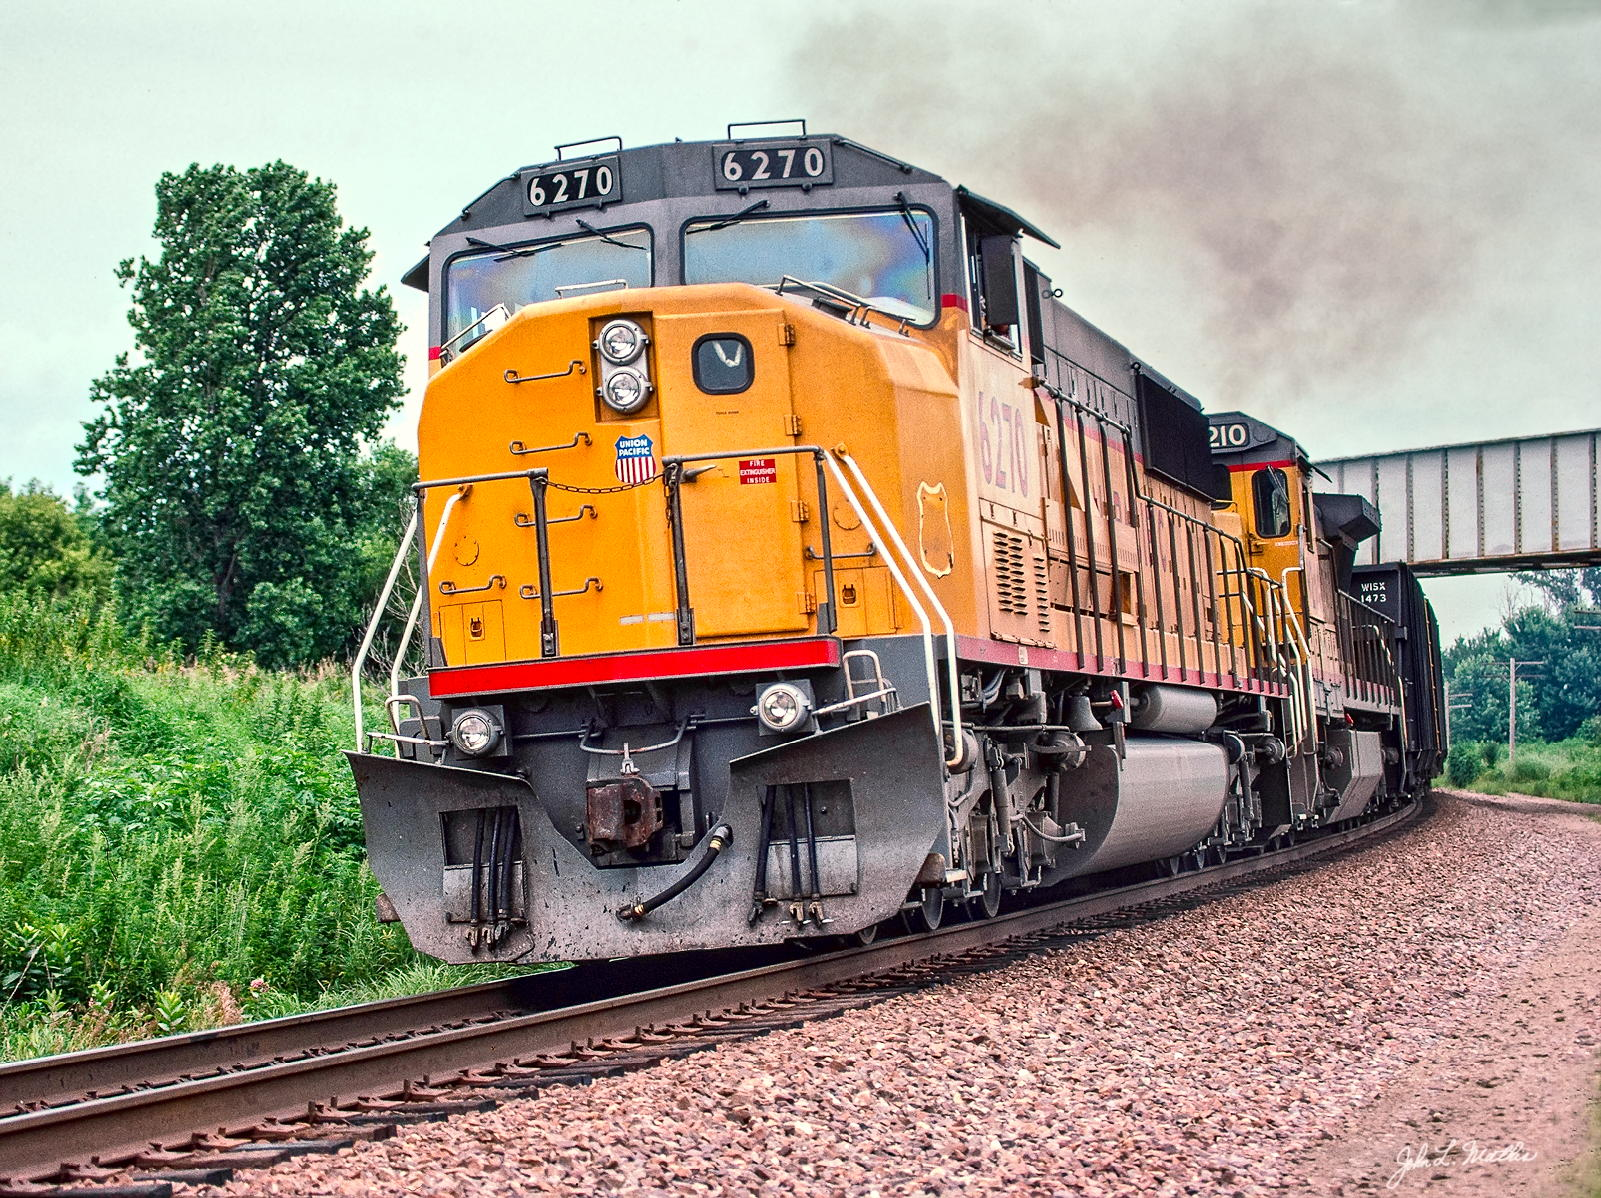 UP 6270 has just passed under the IC (now CN) overpass west of Missouri Valley, IA in July 1993.